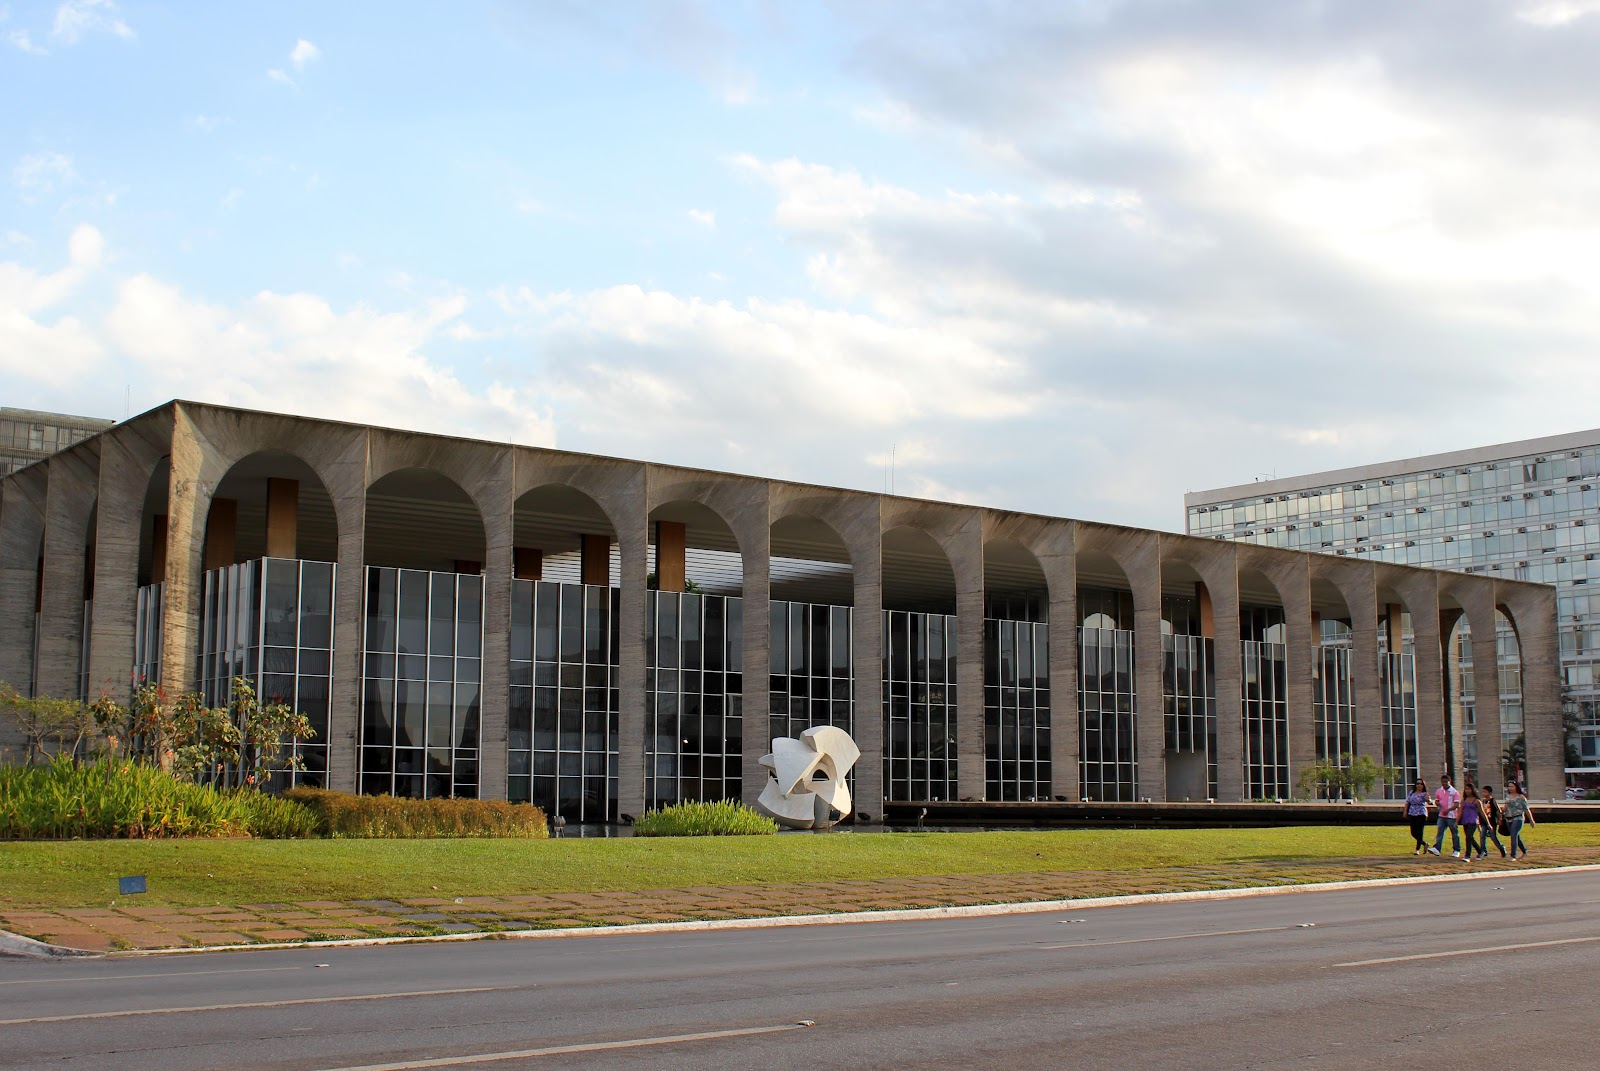 oscar-niemeyer-brazilian-architect-chicquero-design-brasilia-brazil.jpg